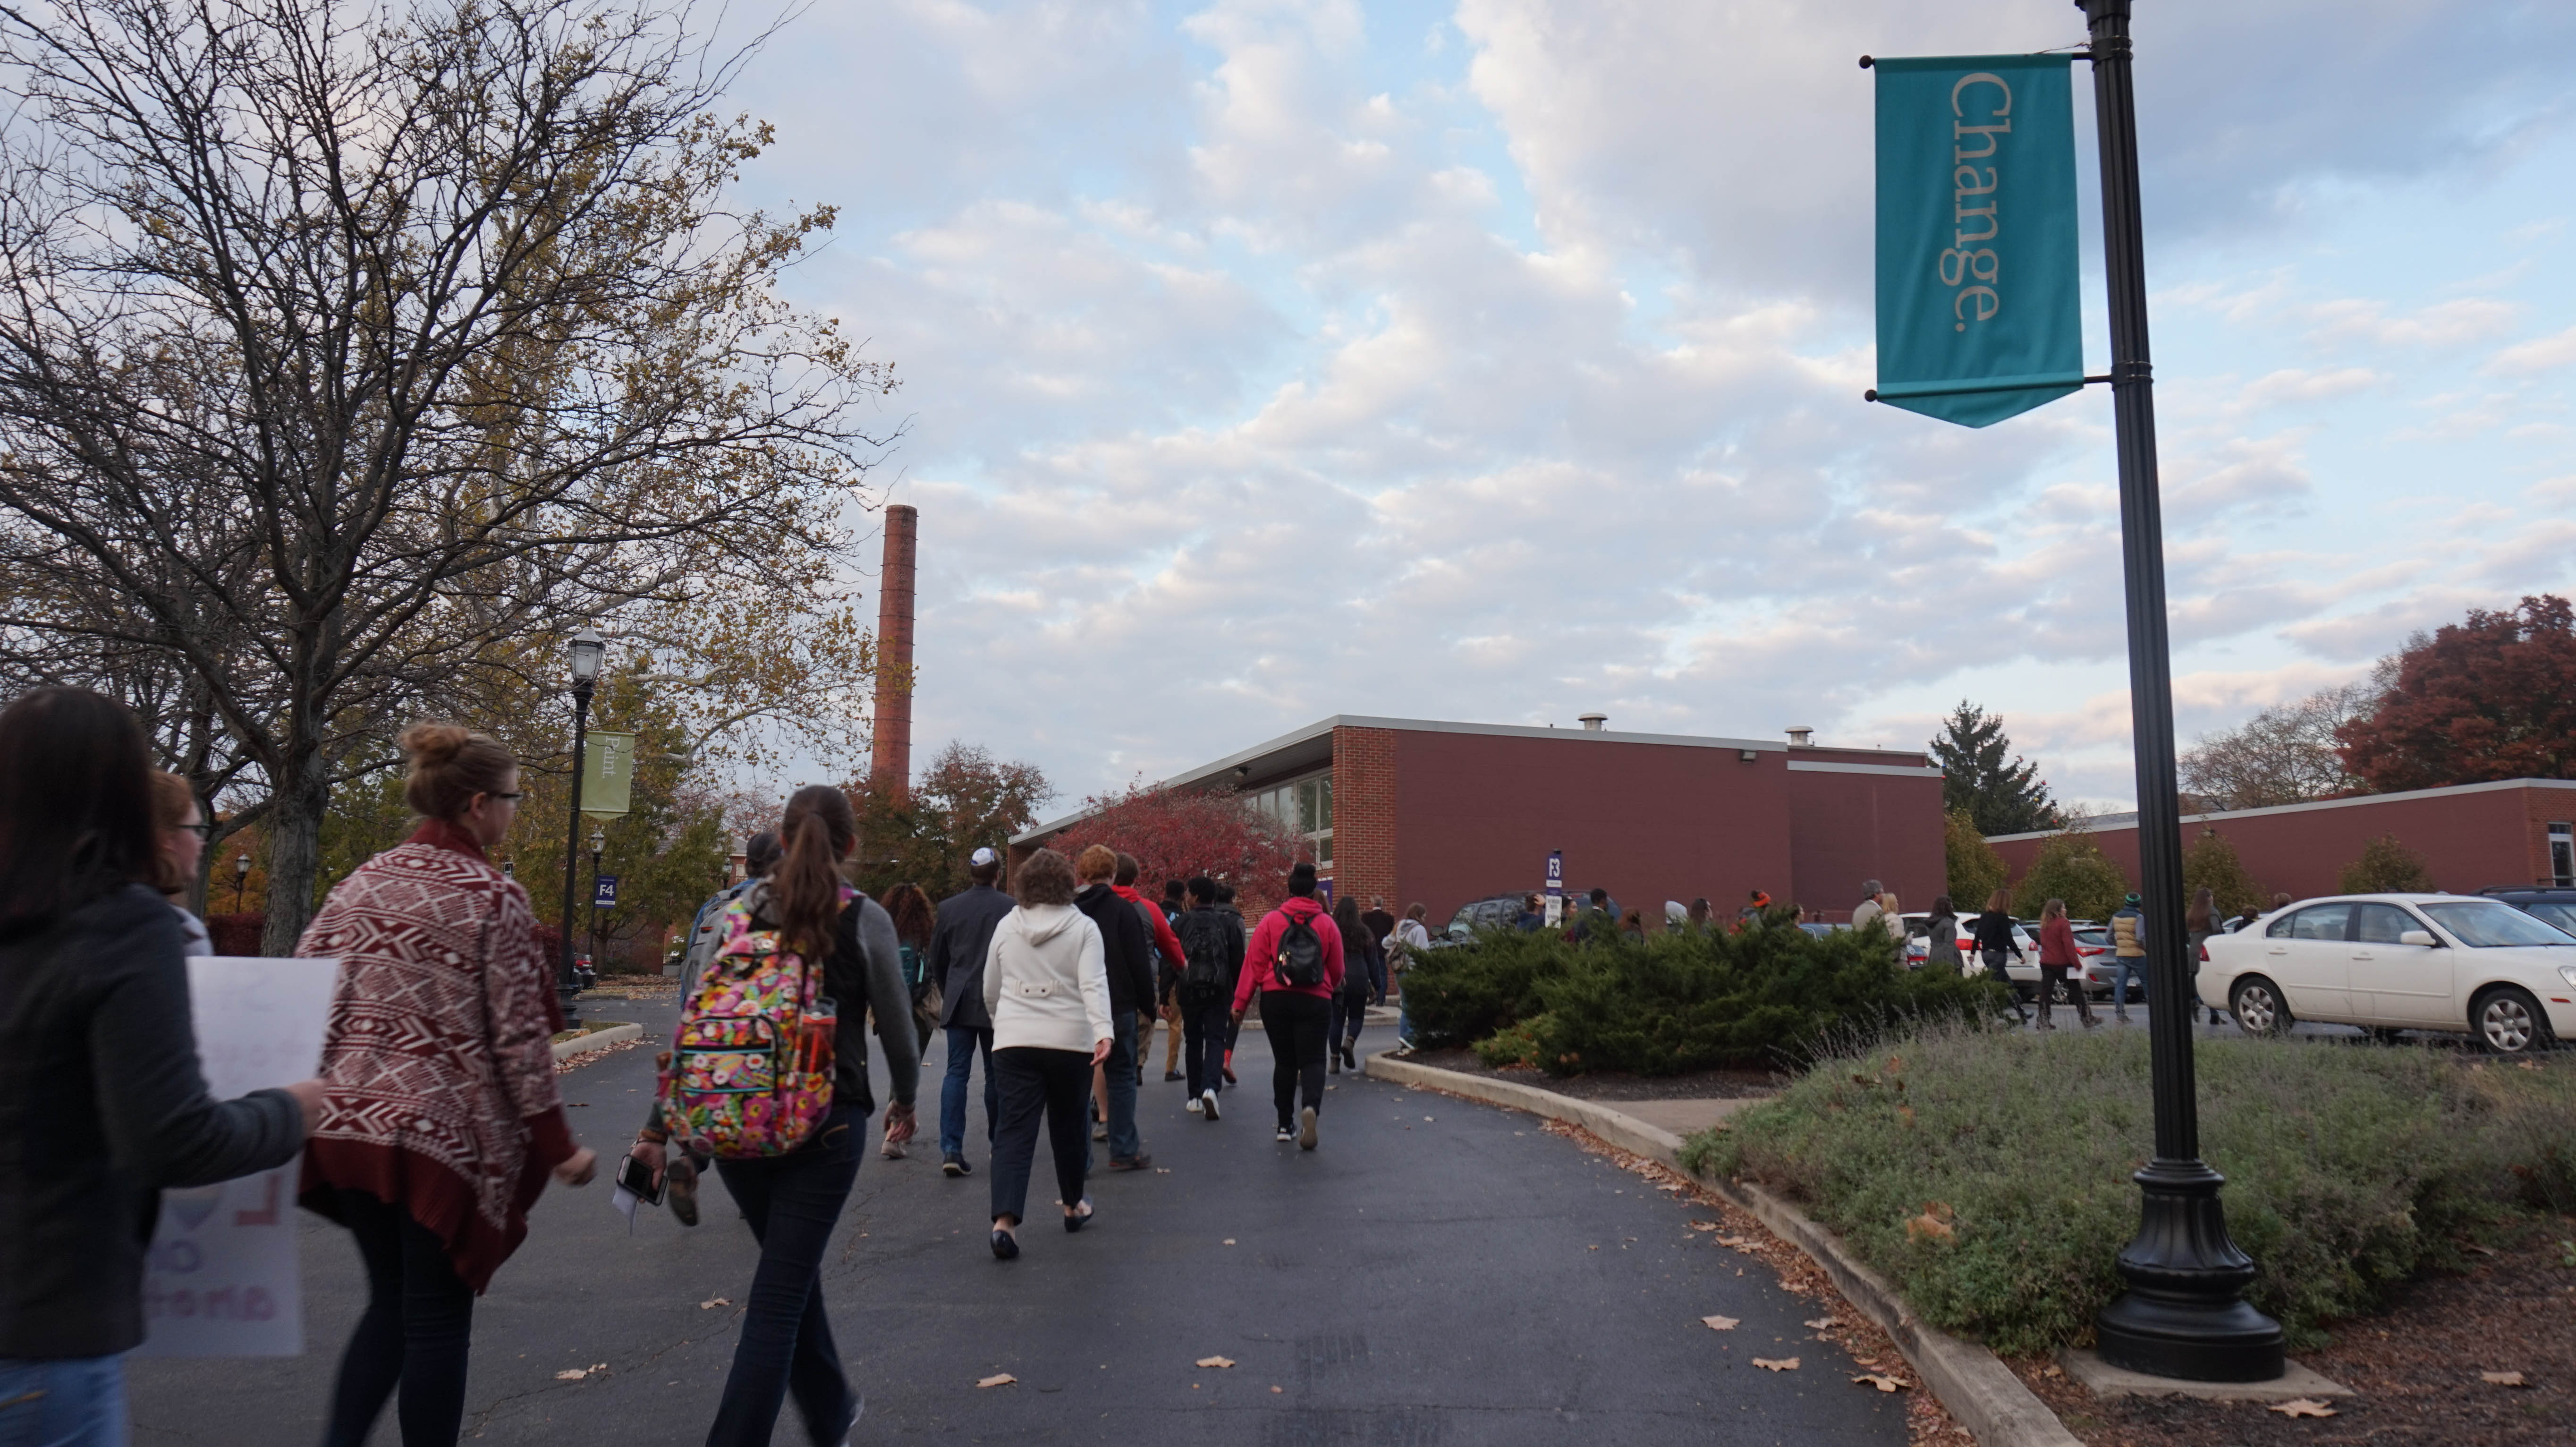 Tensions high on campus after divisive presidential election